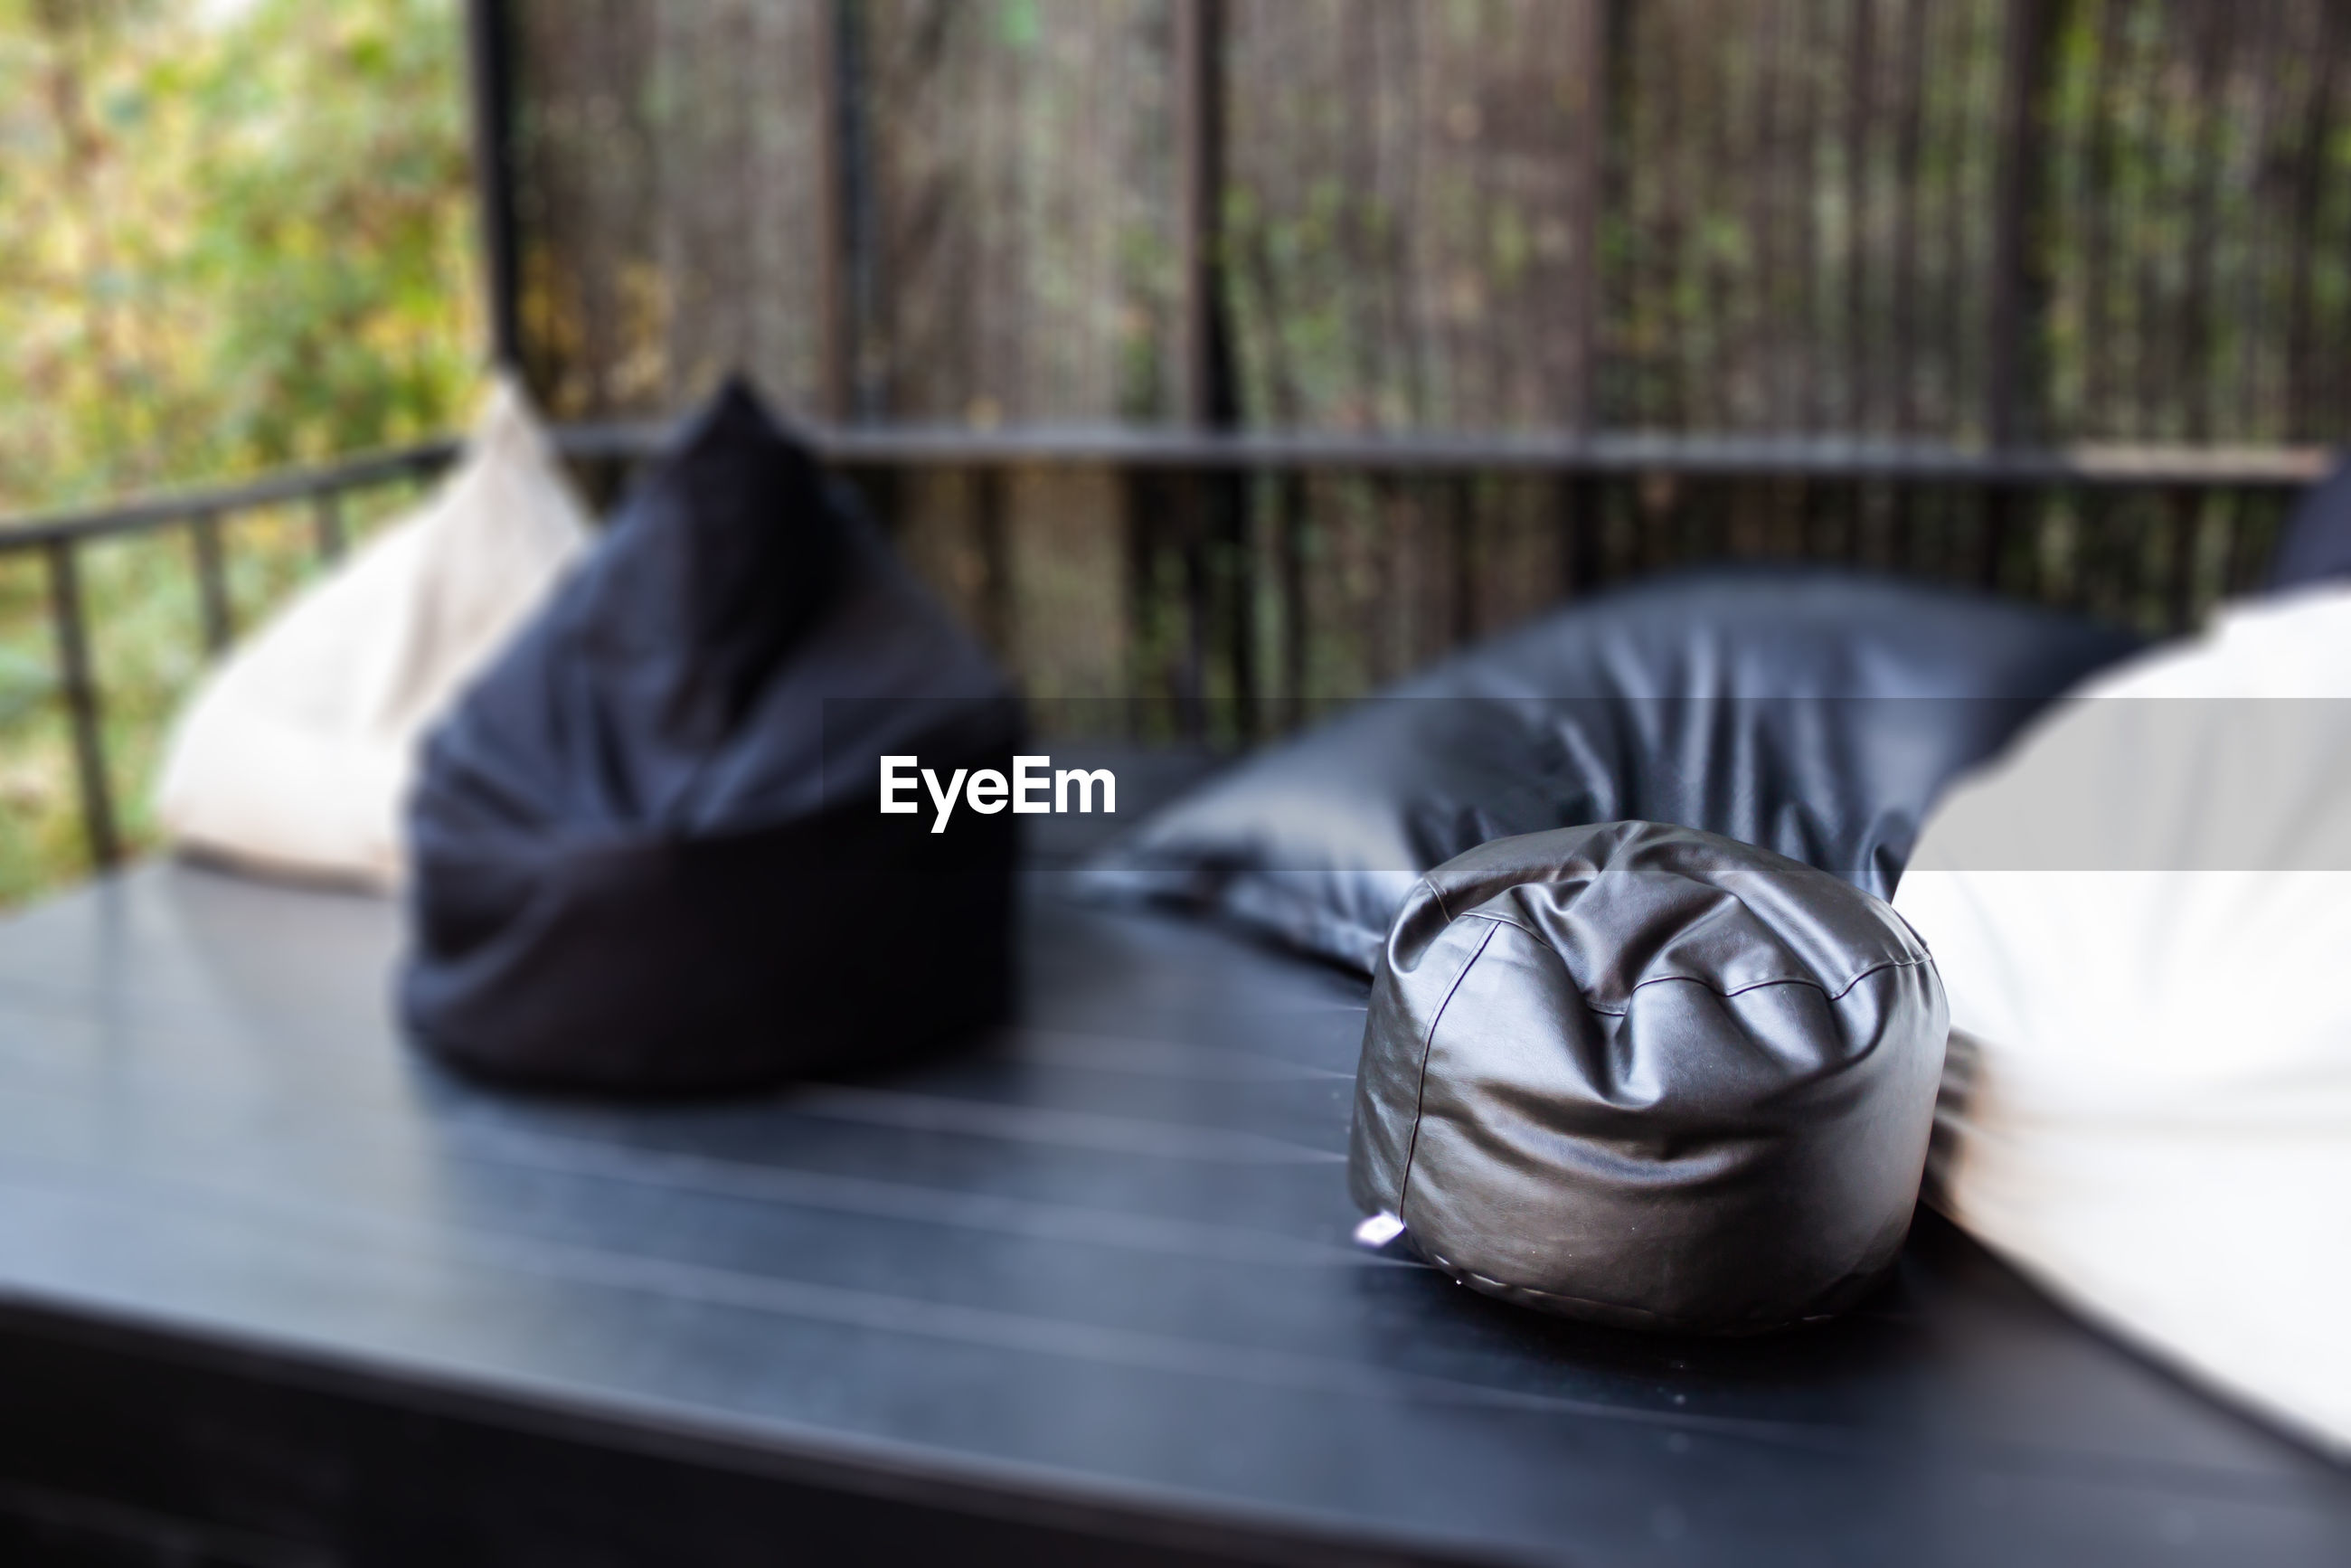 CLOSE-UP OF BLACK COFFEE ON TABLE BY RAILING